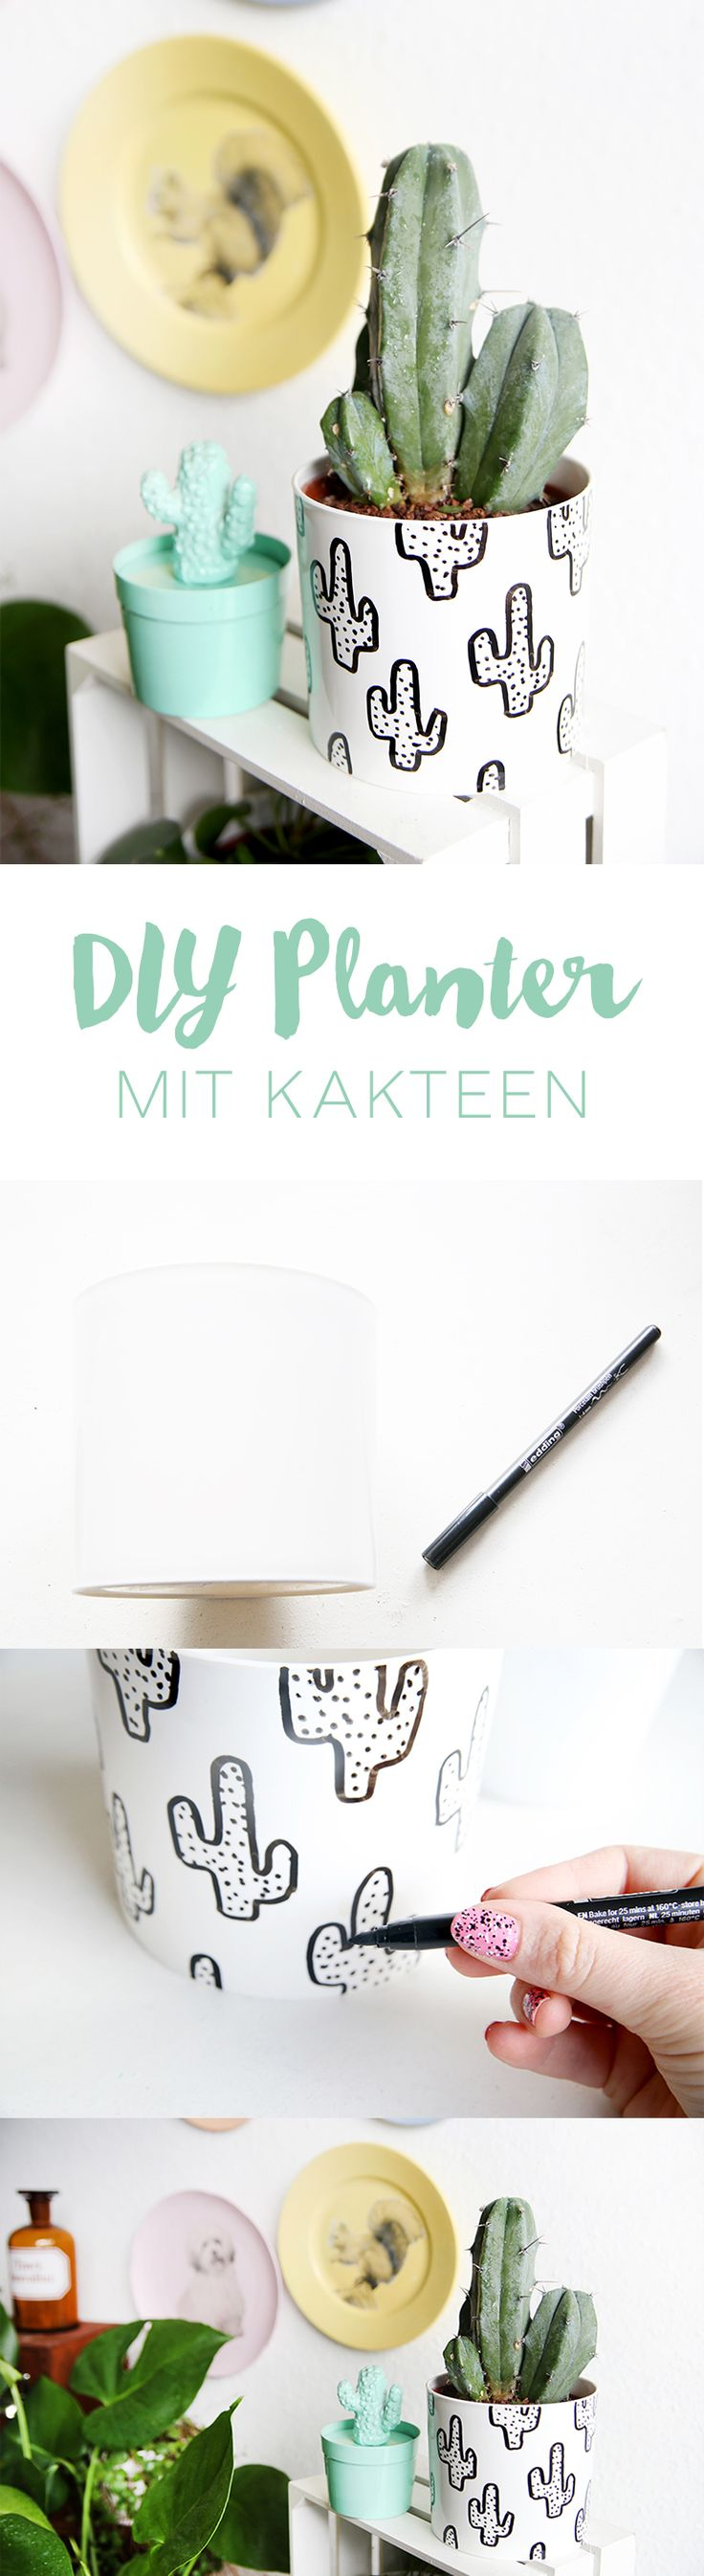 DIY your Christmas gifts this year with GLAMULET. they are 100% compatible with Pandora bracelets. Kreative DIY-Idee: Pflanztopf mit Kakteen bemalen